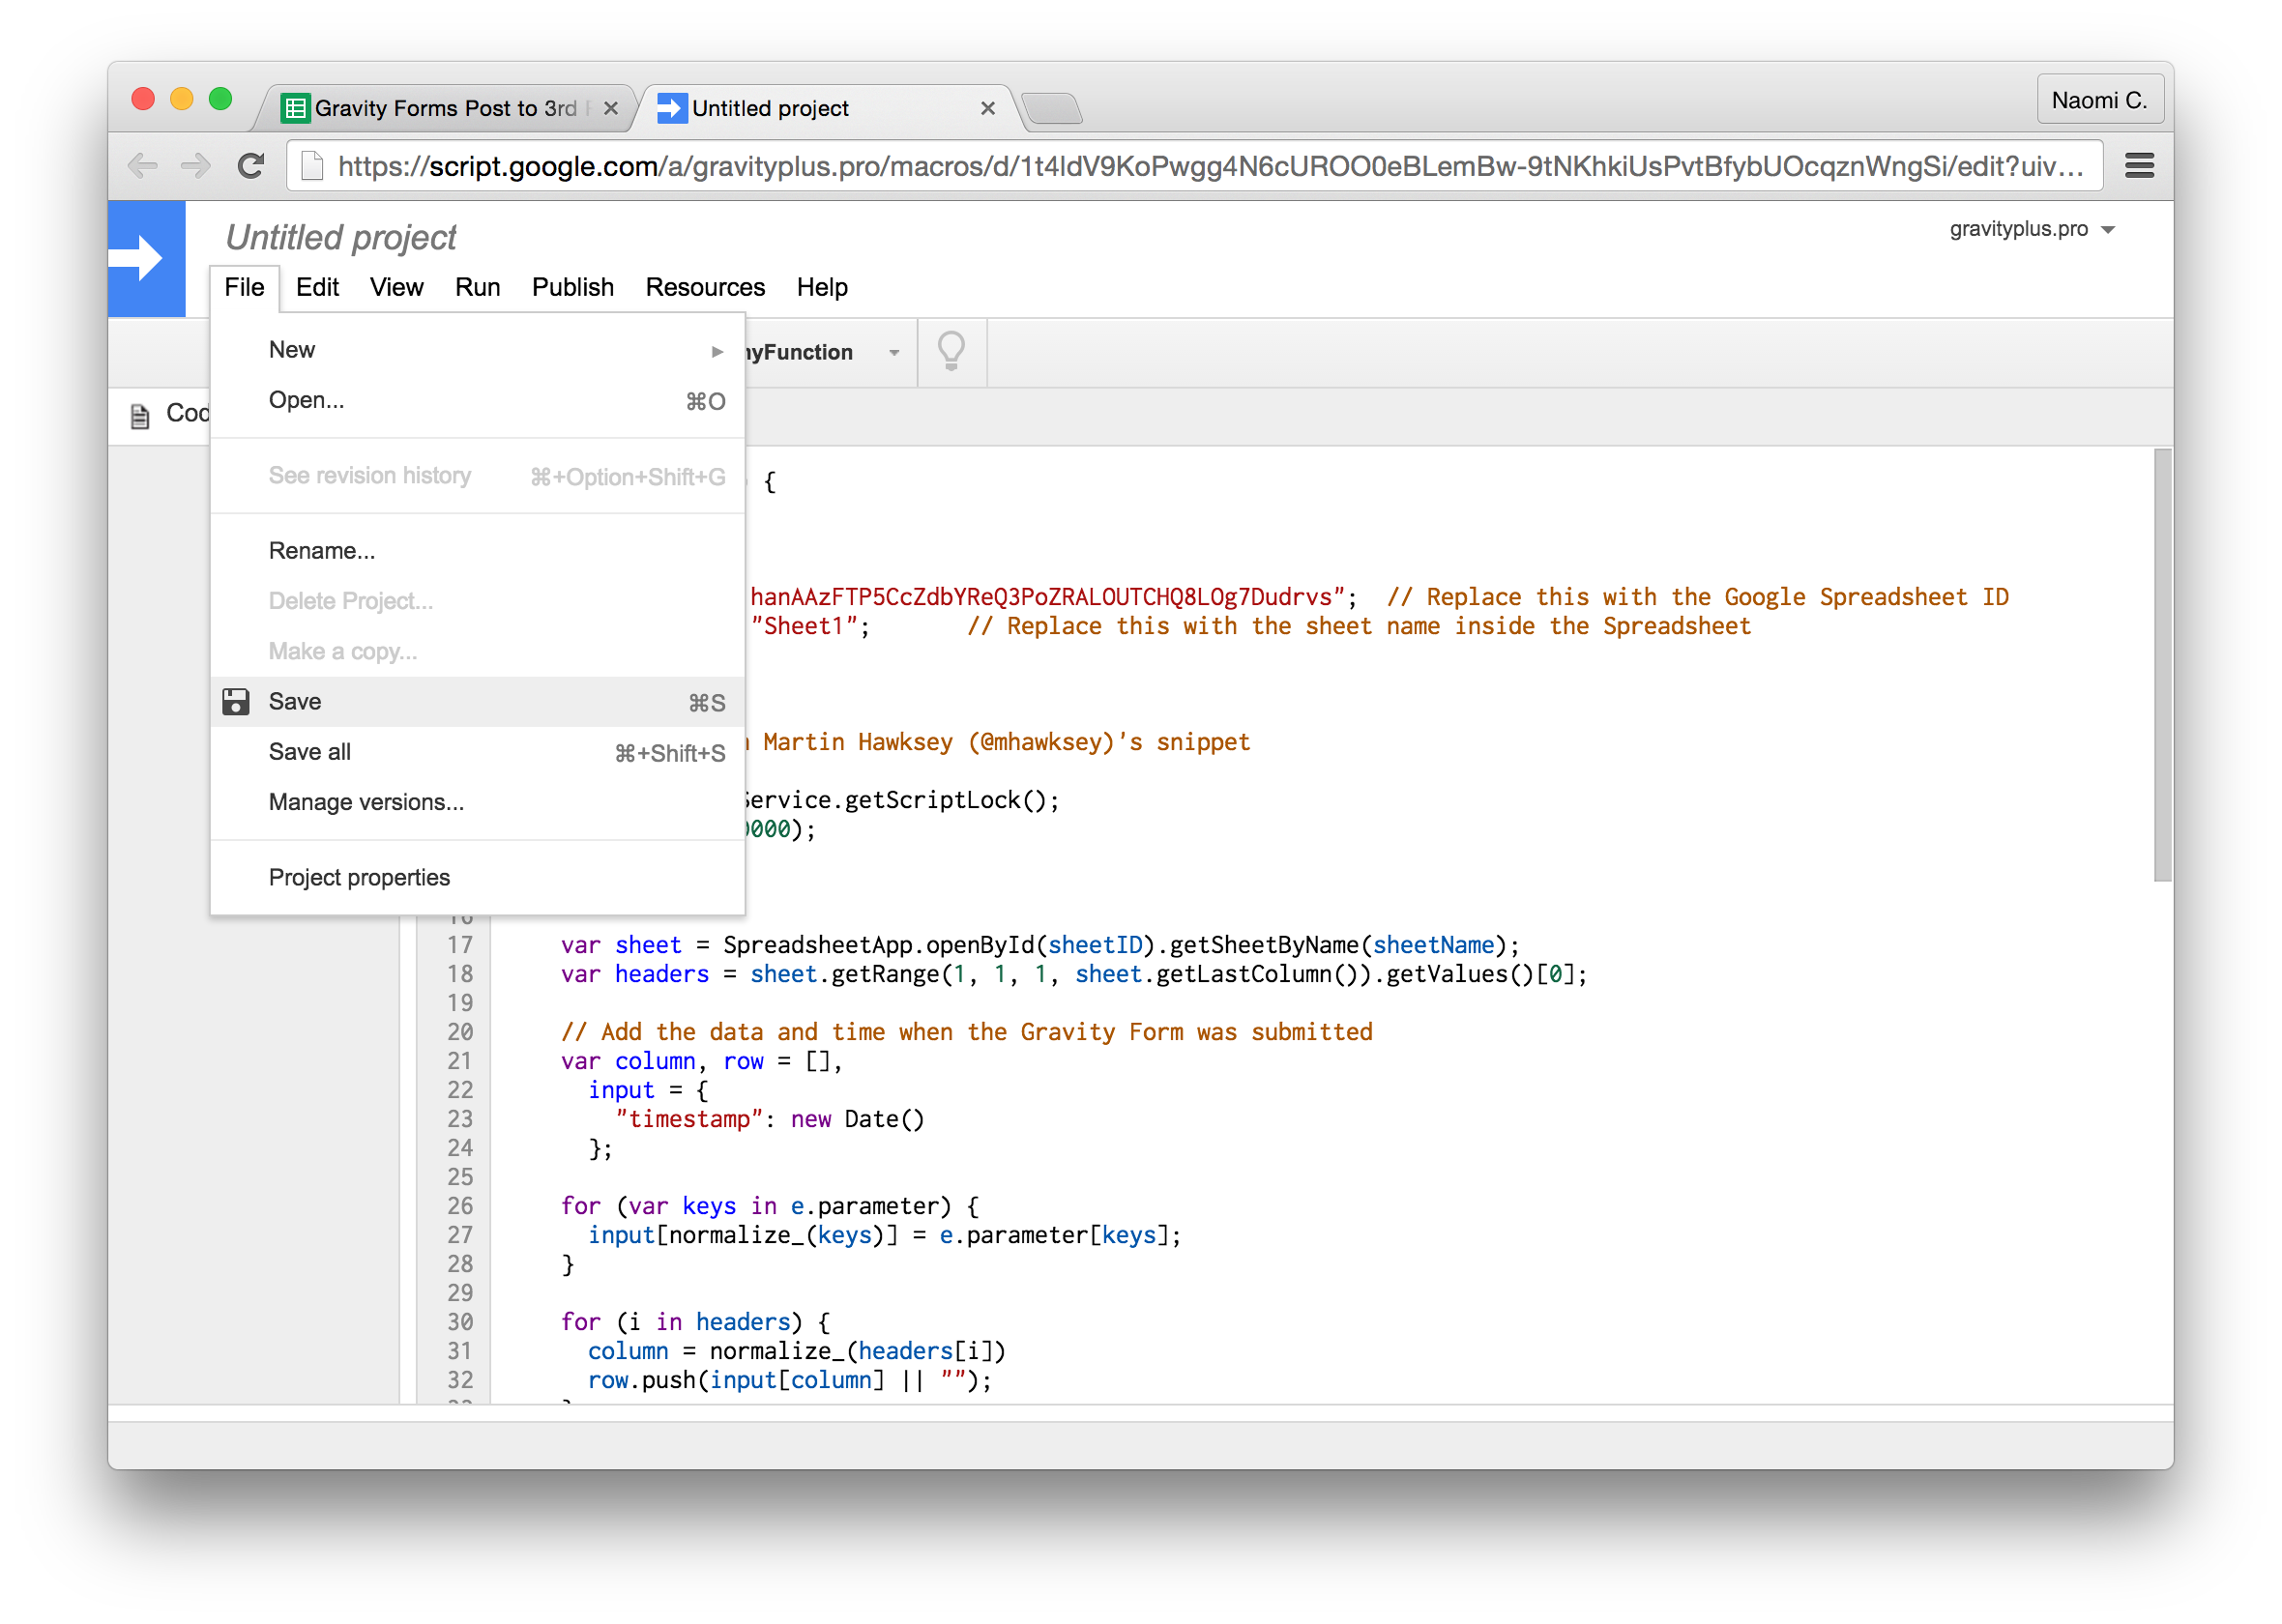 Gravity Forms to Google Sheets save script